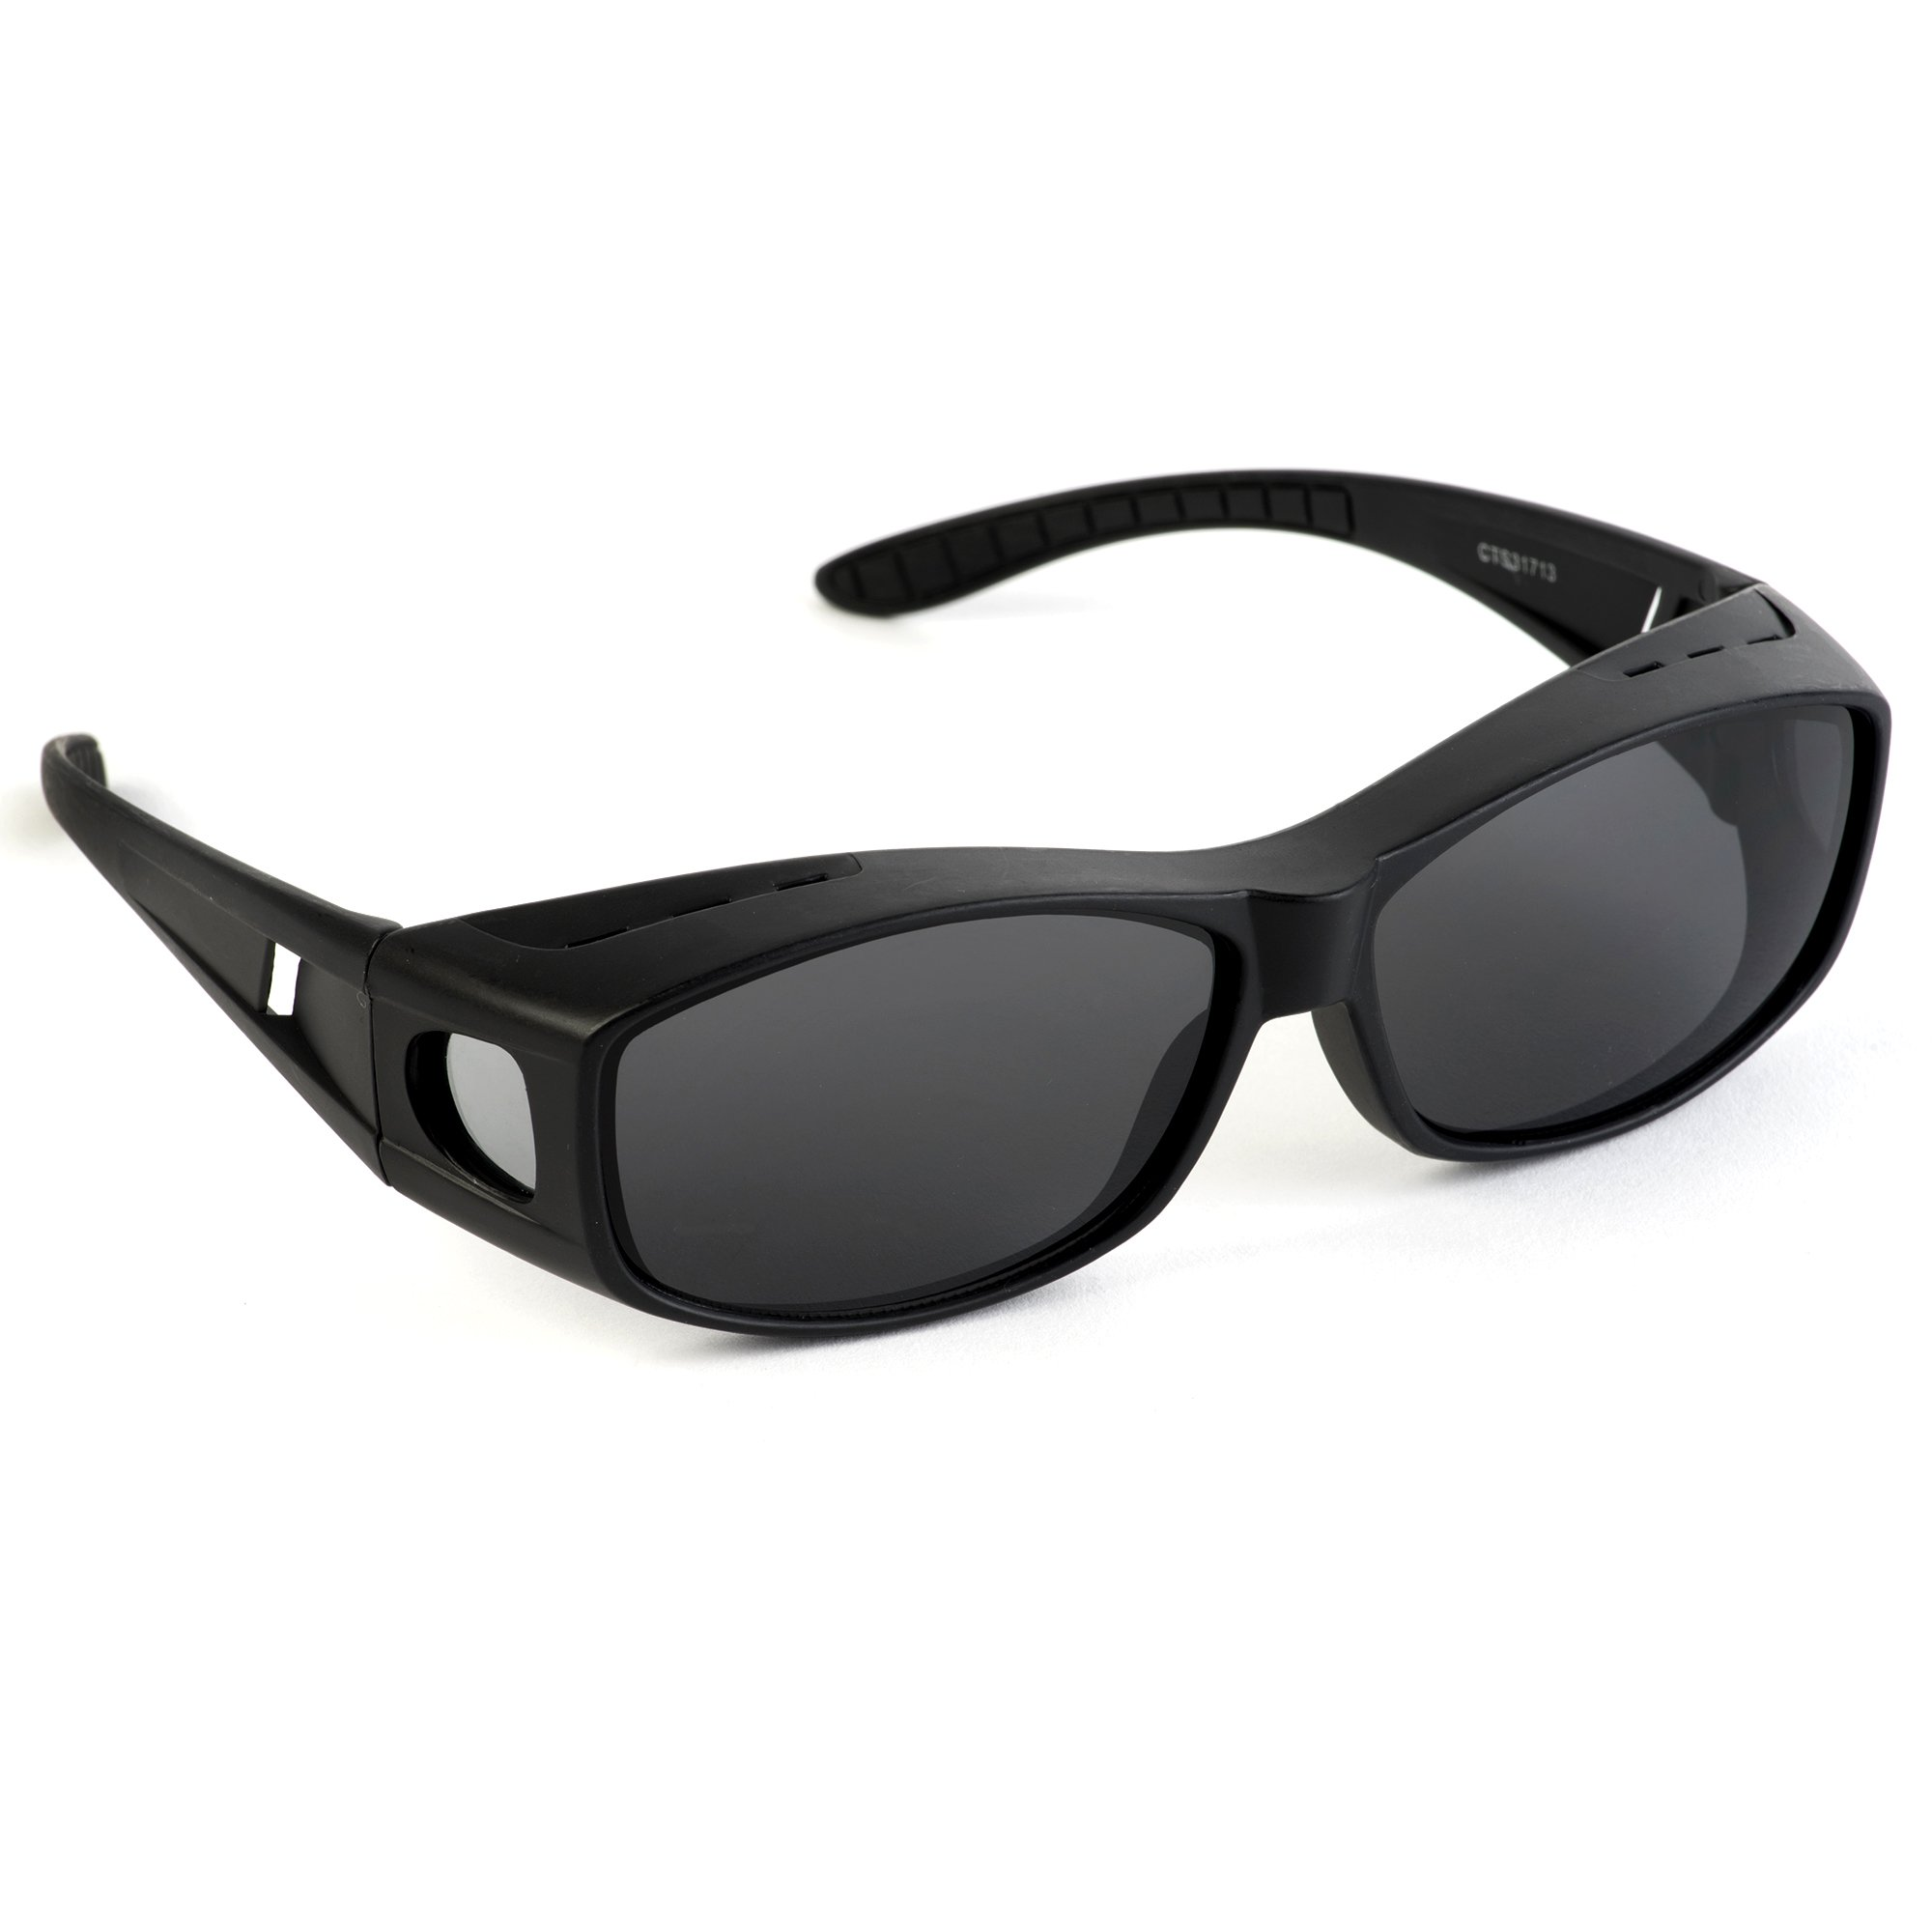 Over Glasses Sunglasses - Polarized Fitover Sunglasses with 100% UV Protection - Style 1 By Pointed Designs (Black)